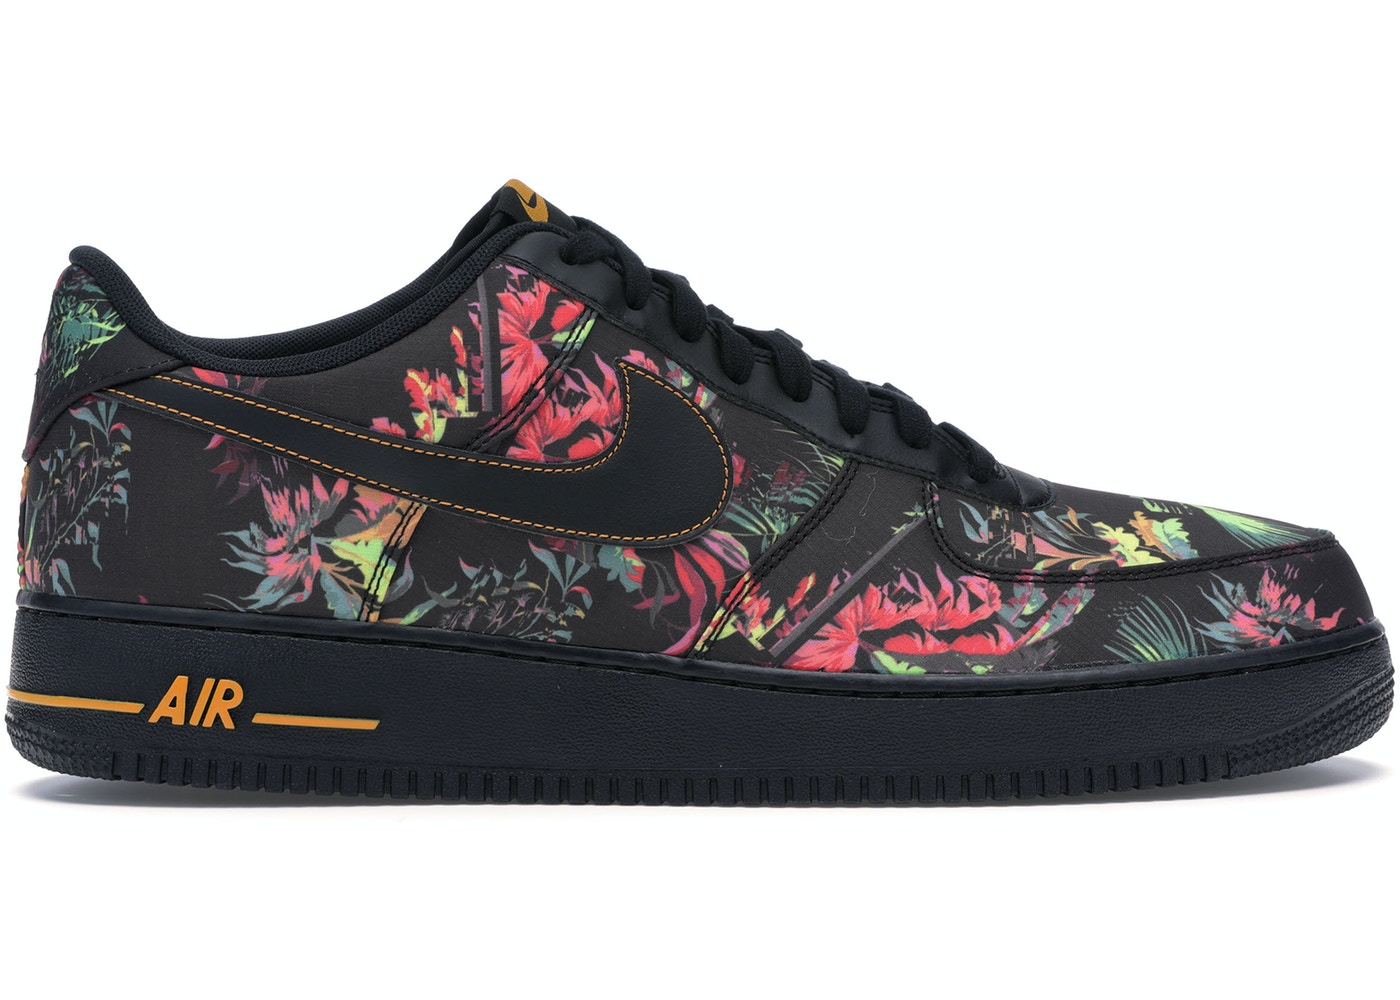 super popular aae0e 73aba Buy Nike Air Force 1 Shoes  Deadstock Sneakers